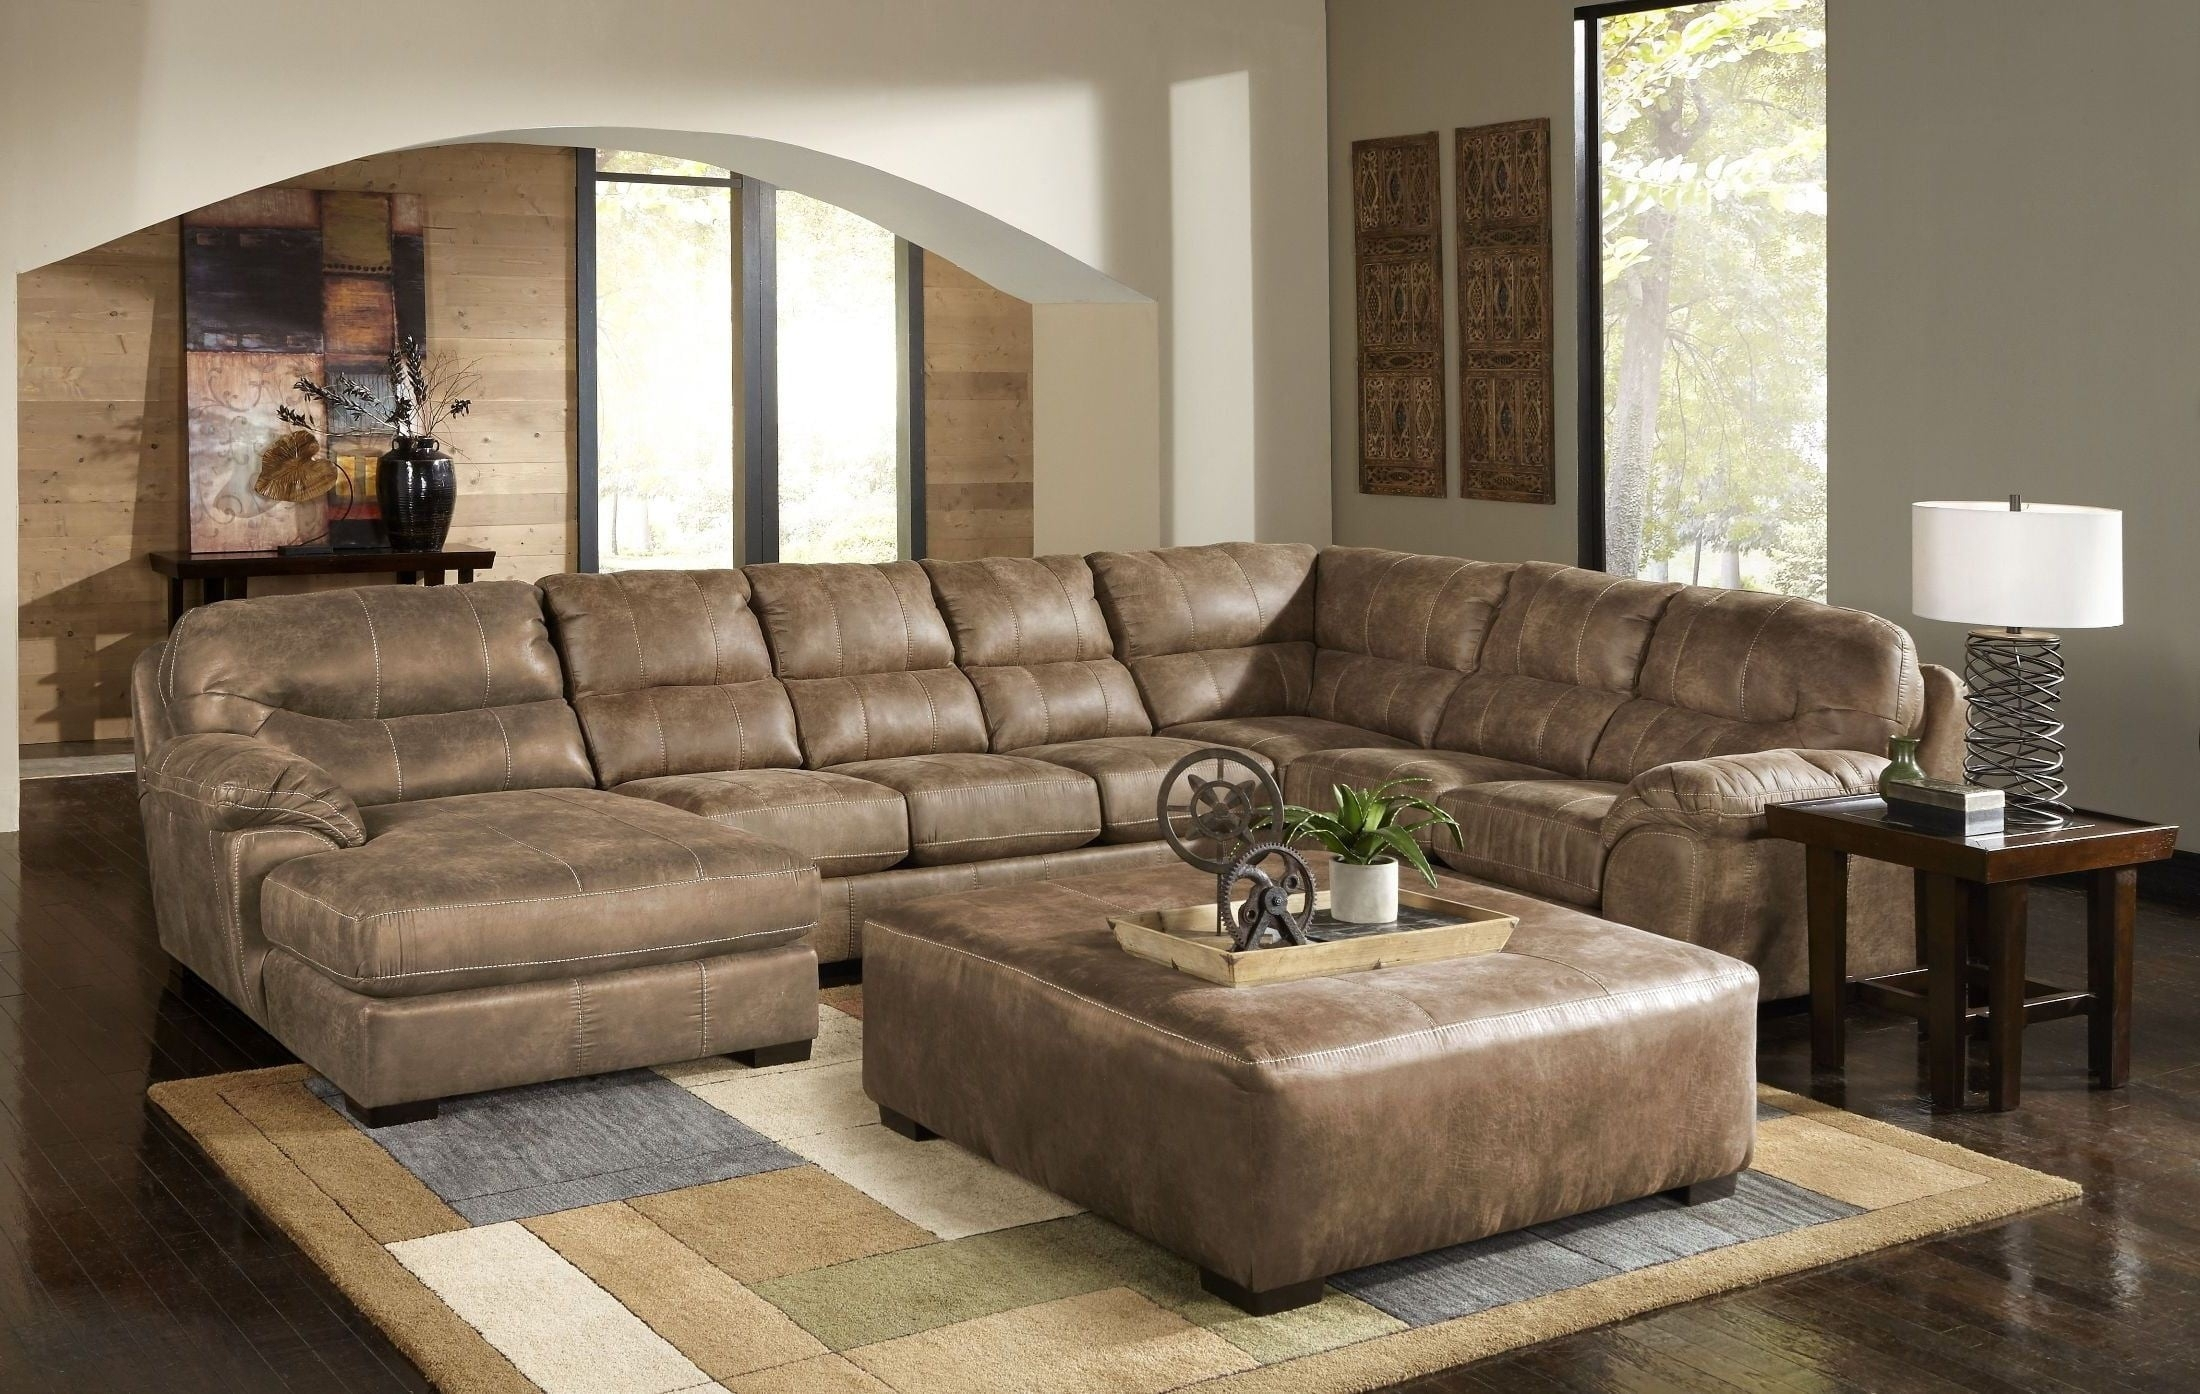 Grant Silt Laf Chaise Sectional, 4453-75-122749302749, Jackson with Avery 2 Piece Sectionals With Raf Armless Chaise (Image 16 of 30)